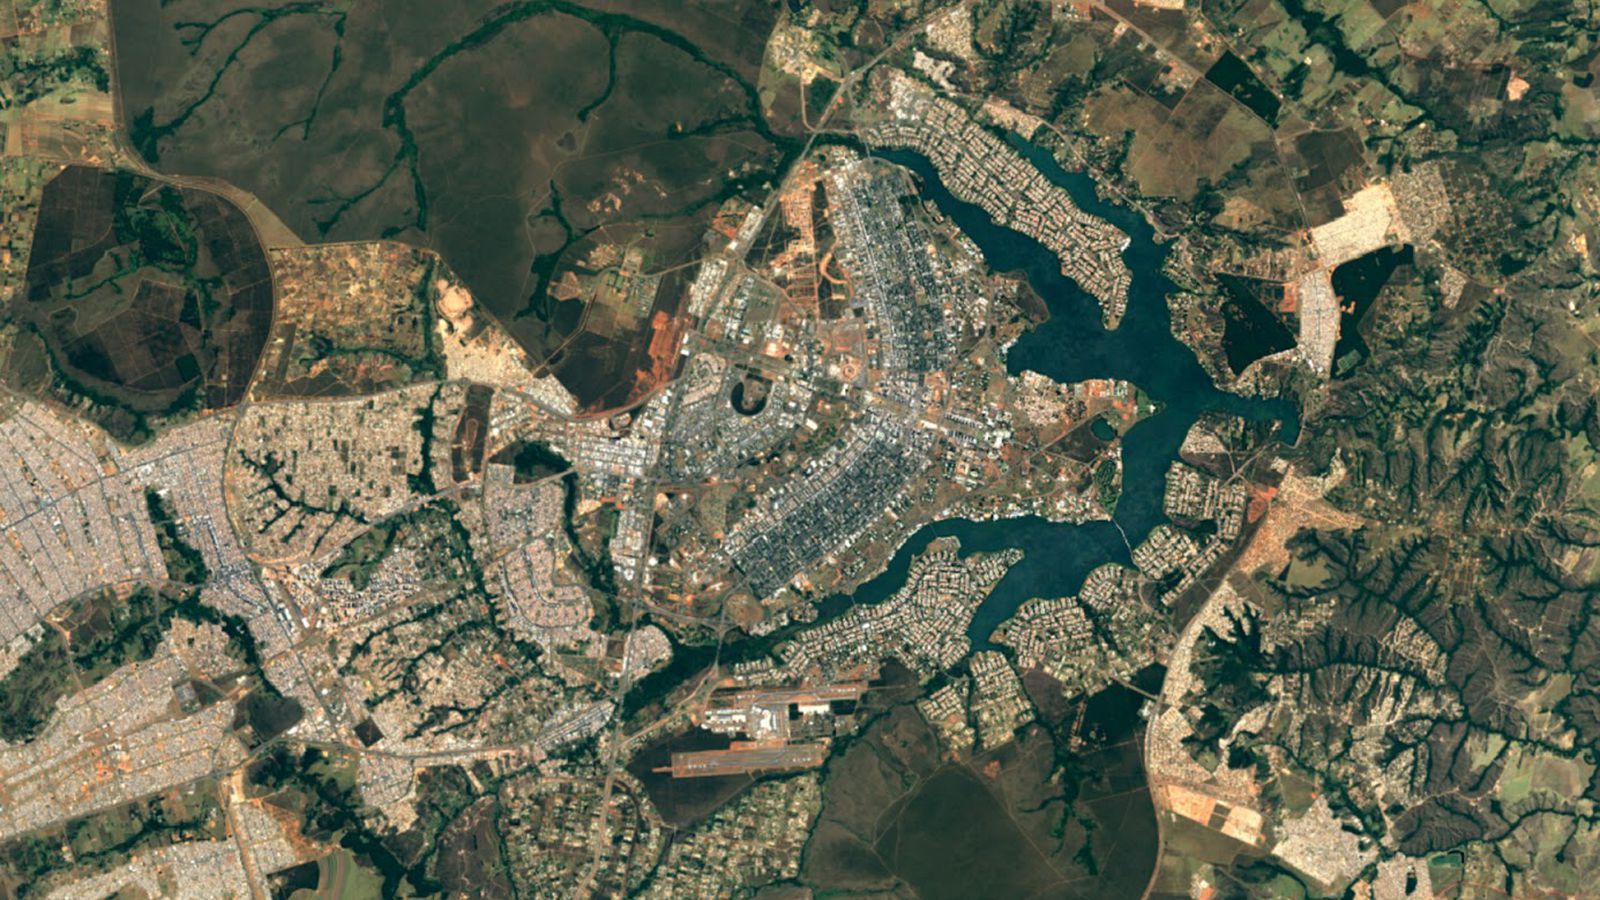 google-maps-earth-1.0.0 Gogole Map on nokia maps, googe maps, goolge maps, satellite maps, google voice, bing maps platform, google earth, gopogle maps, ggoogle maps, googgle maps, android maps, route planning software, journey planner, bing maps, googlle maps, goolgle maps, googel maps, yahoo! maps, goole maps, google sky, googlw maps, gloogle maps, google mars, google search, googke maps, gogle maps, google map maker, facebook maps, google moon, satellite map images with missing or unclear data, gooogle maps, googl maps, web mapping, google latitude, google maps, goofle maps,